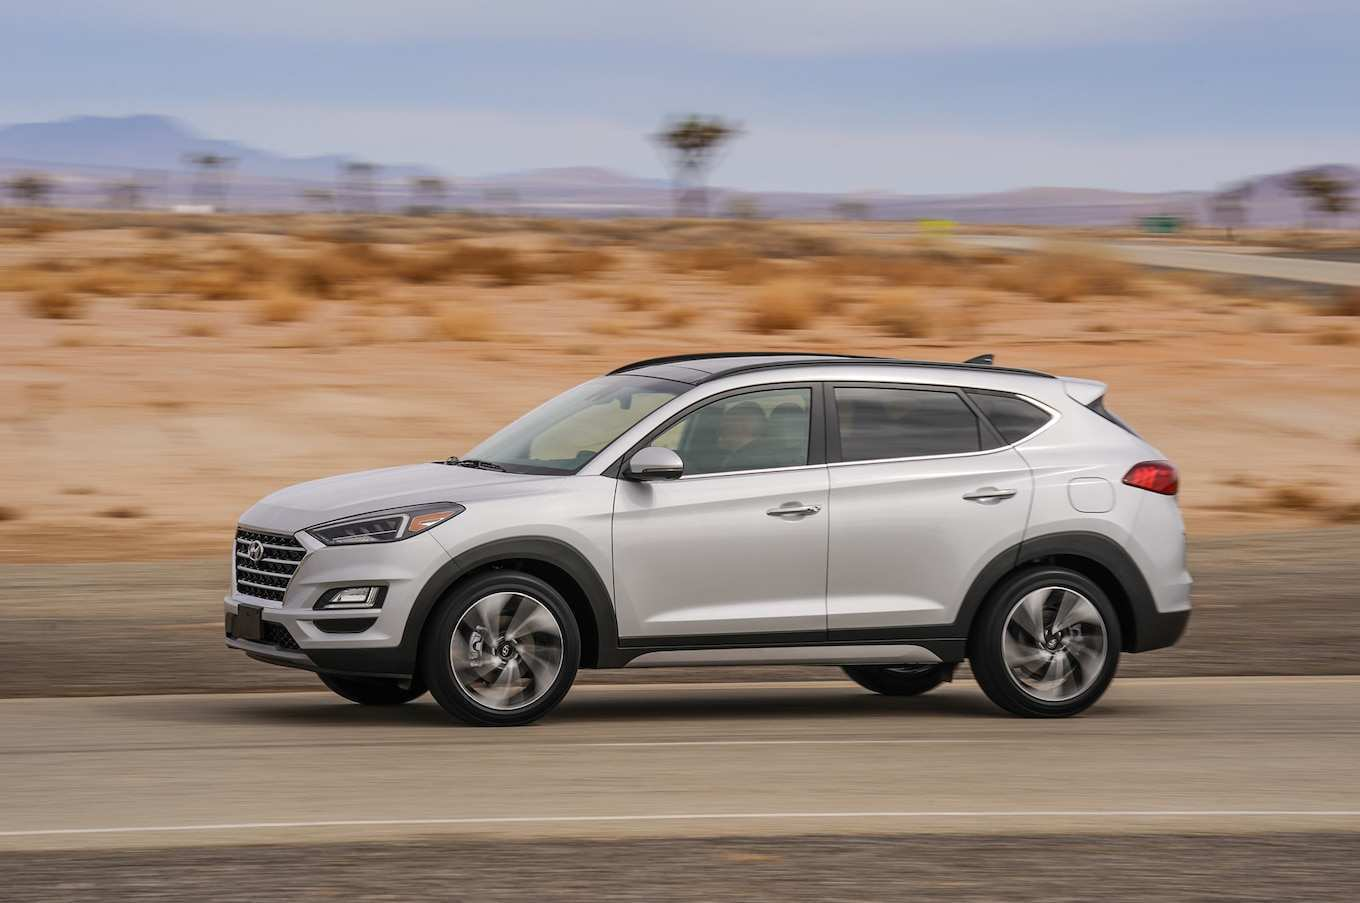 27 All New 2019 Hyundai Crossover Review for 2019 Hyundai Crossover